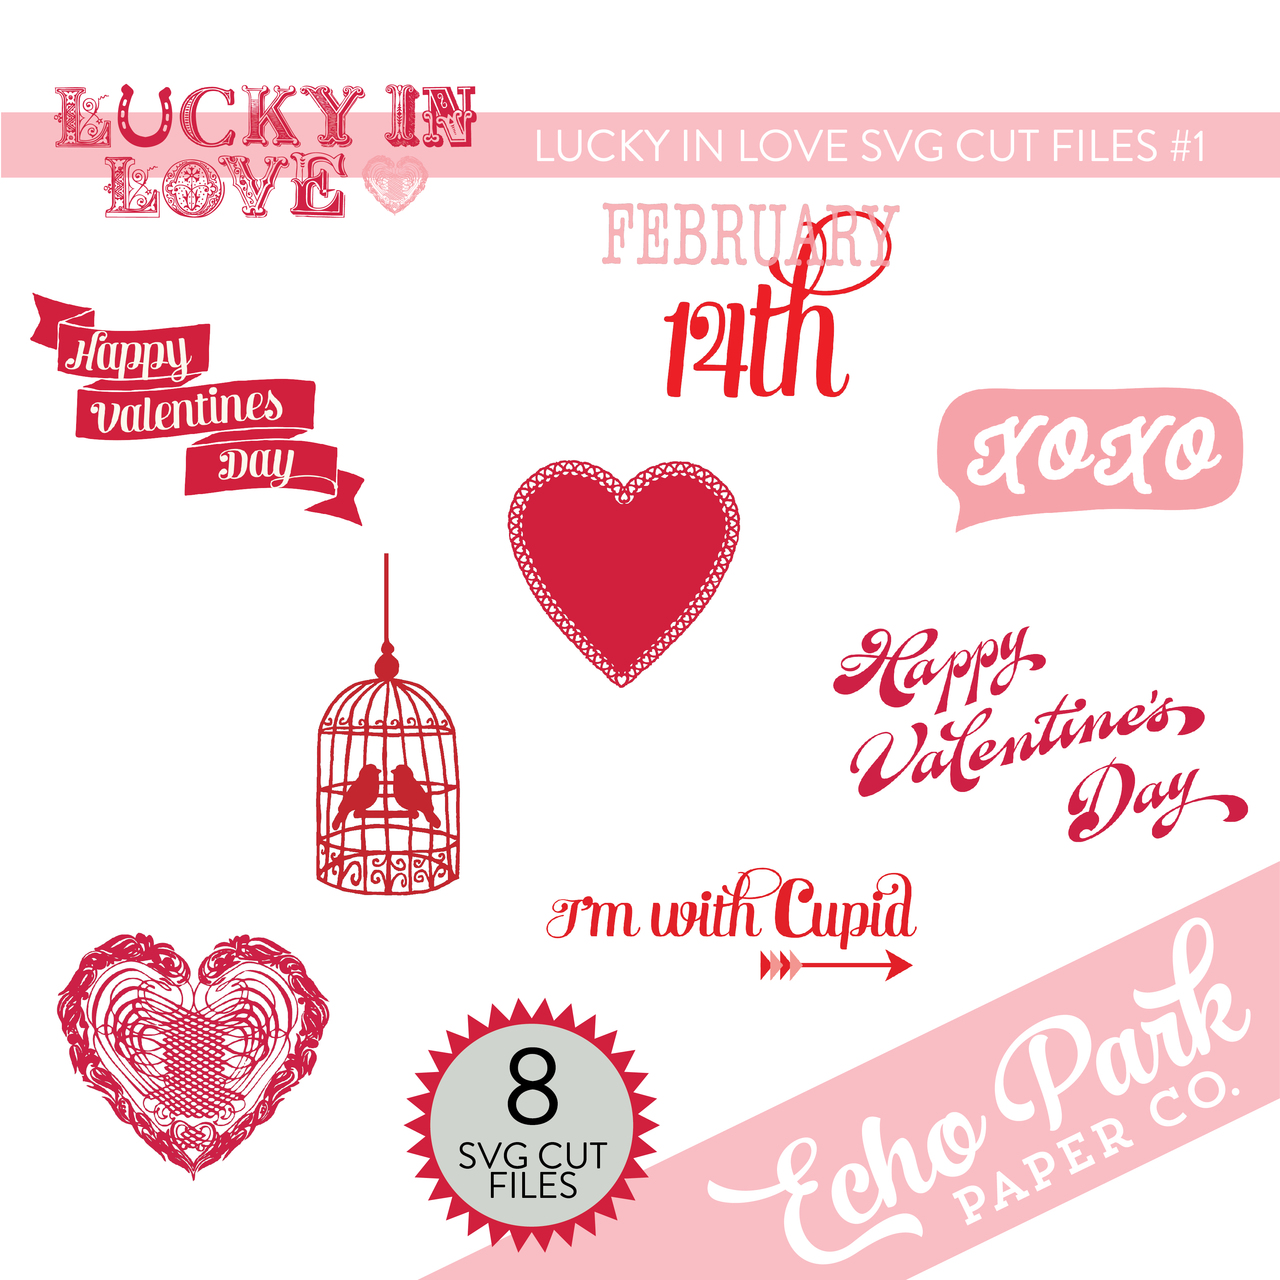 Lucky In Love SVG Cut Files #1